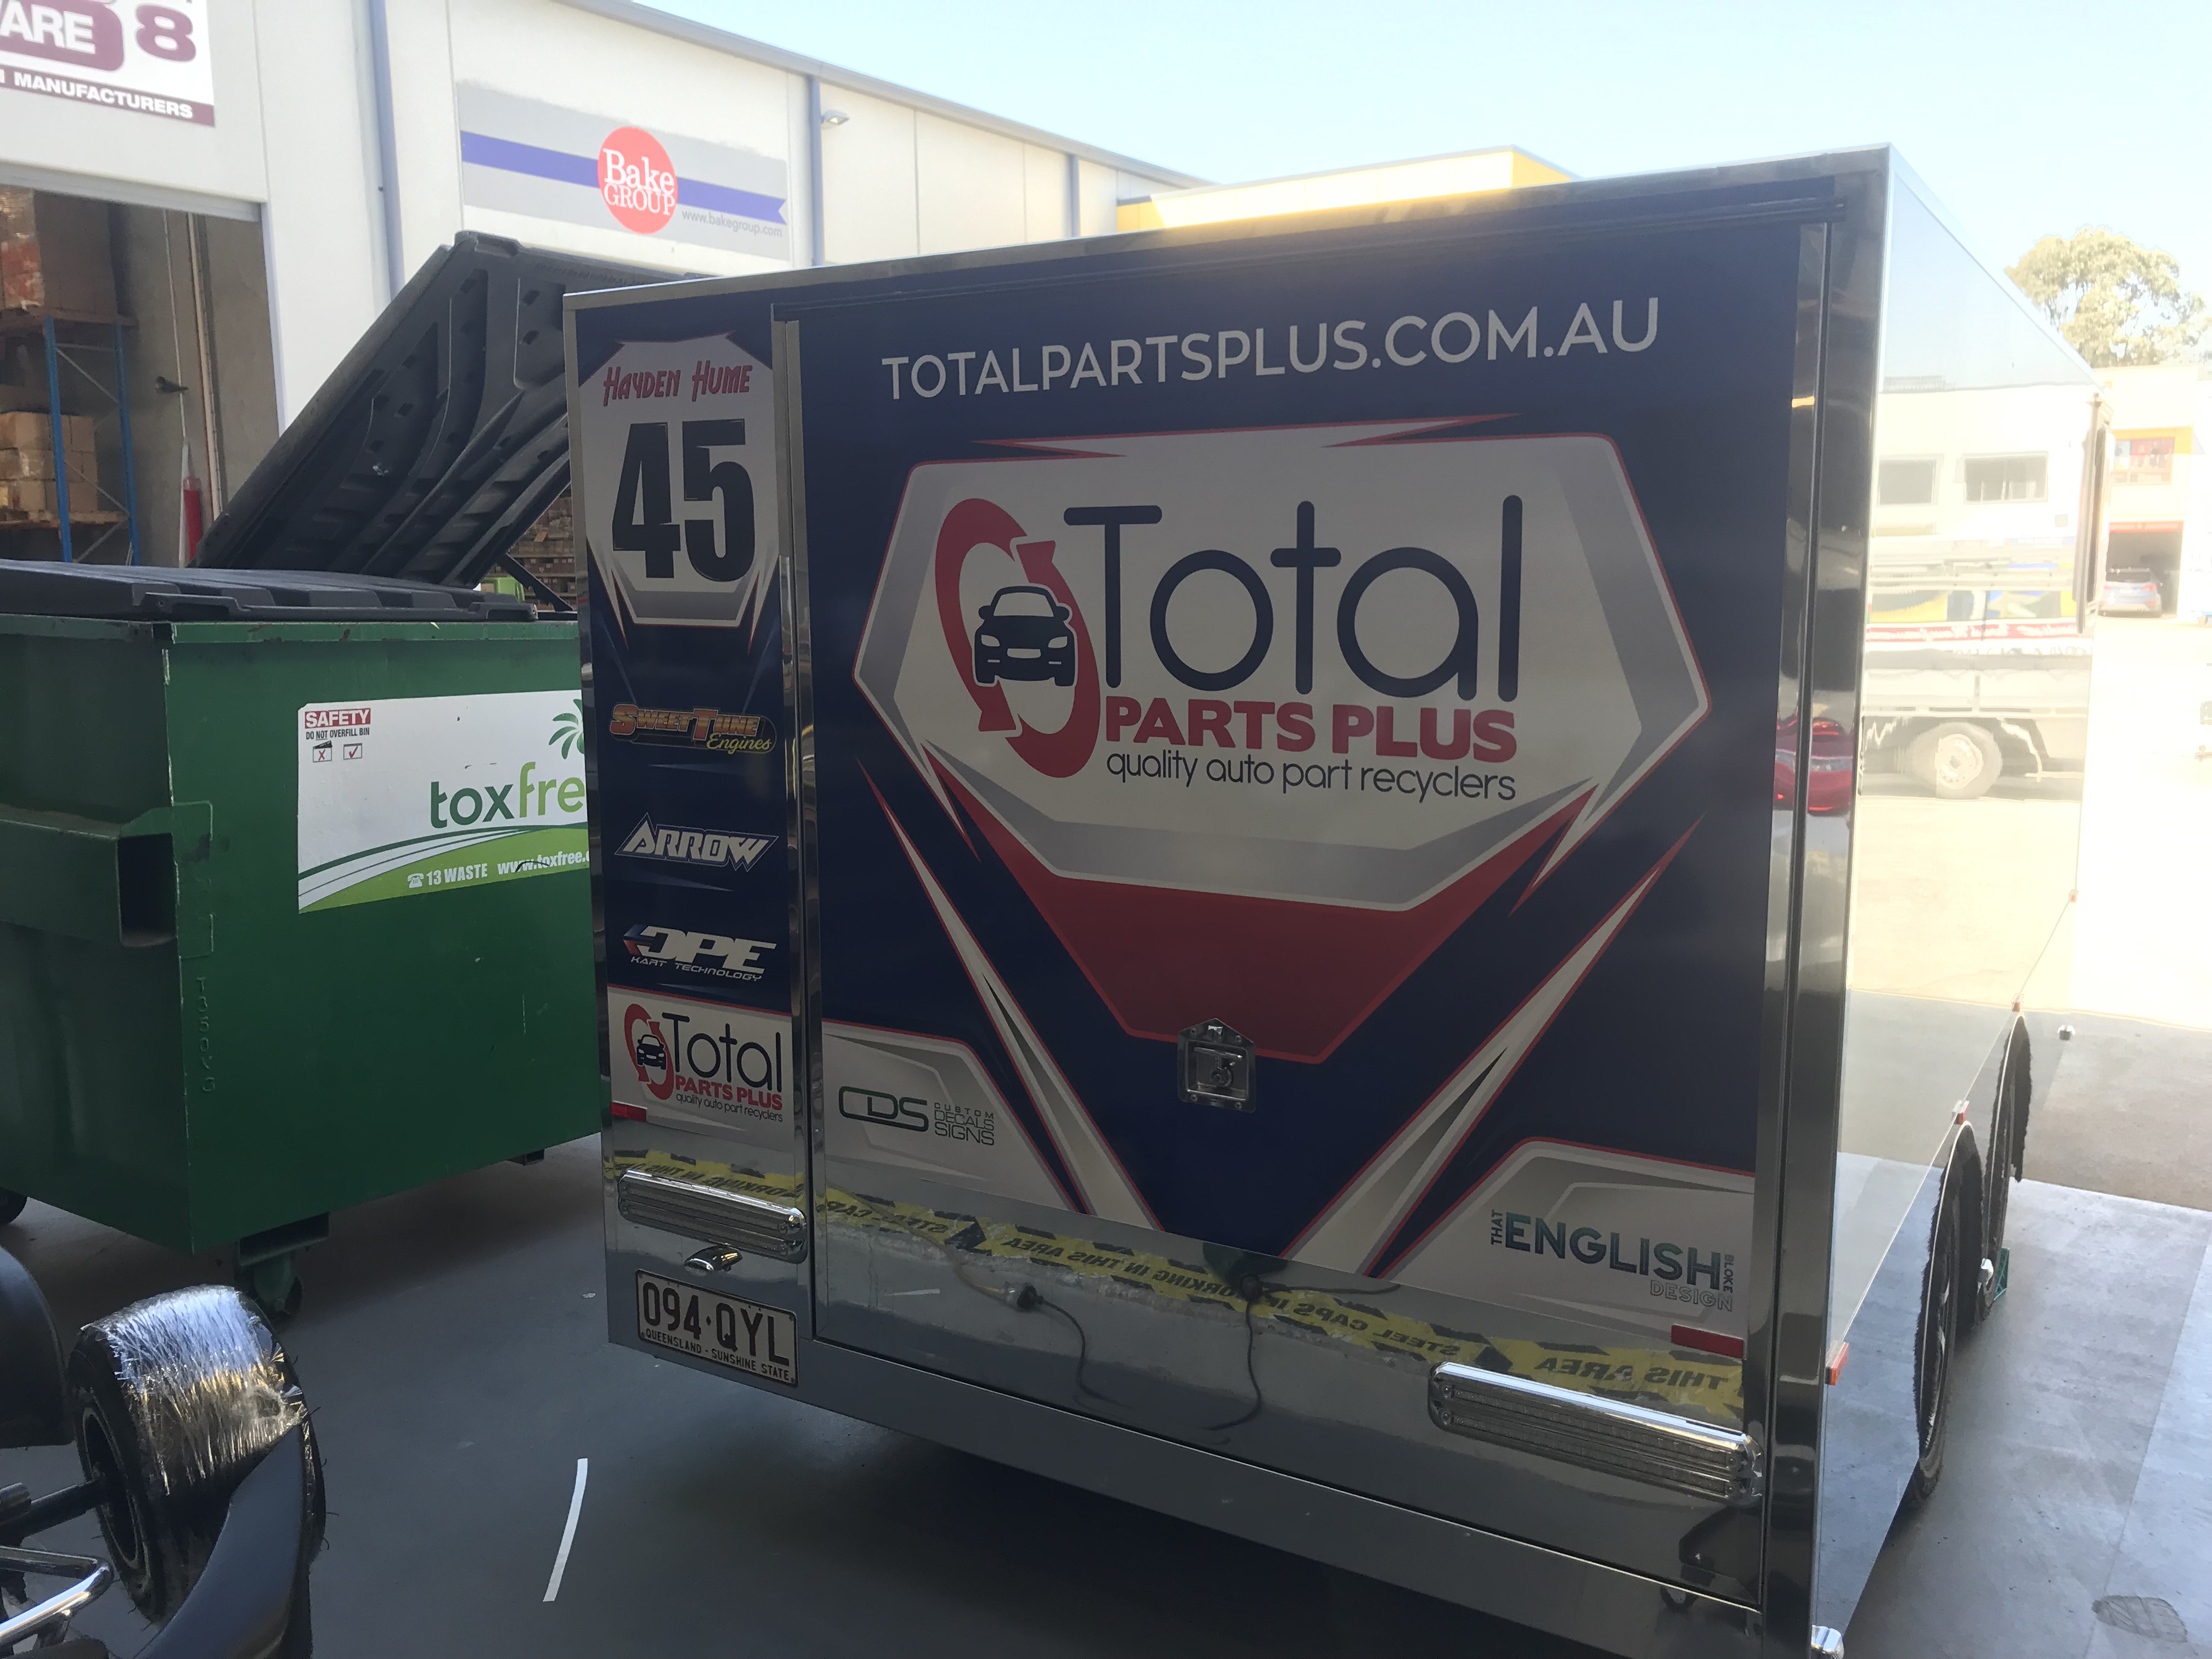 Total Parts Plus Trailer